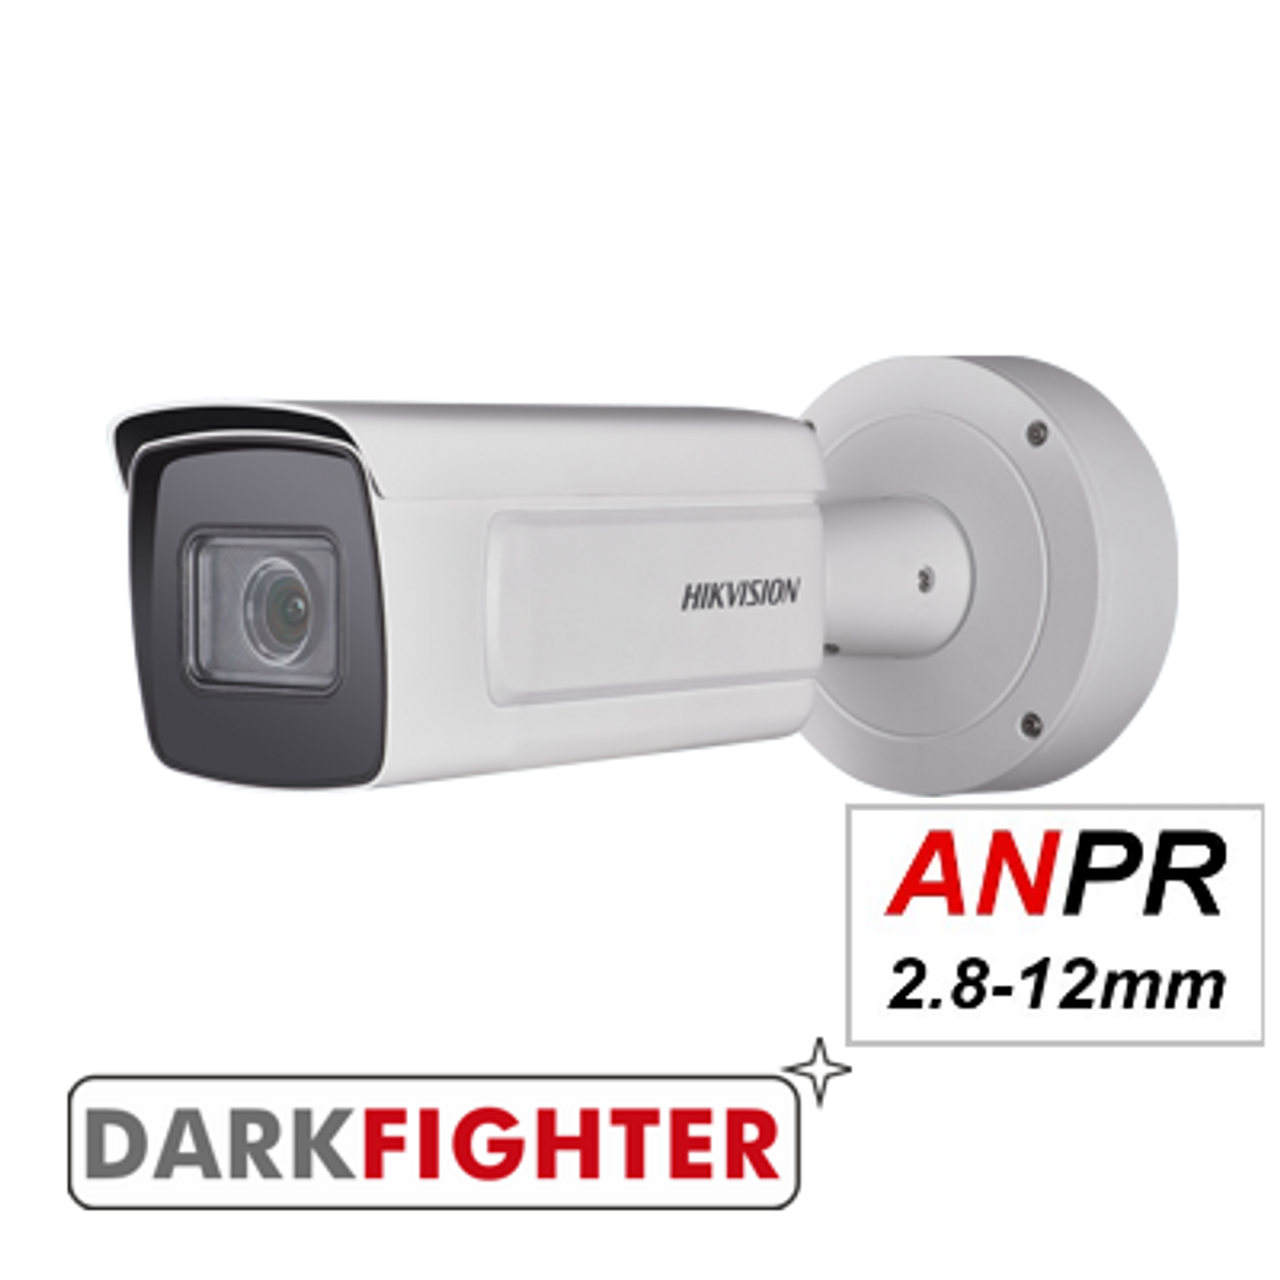 Hikvision DS-2CD7A26G0/P-IZS (2.8 - 12mm Lens) Up To 15m Capture Distance 2MP ANPR Licence Plate Recognition camera